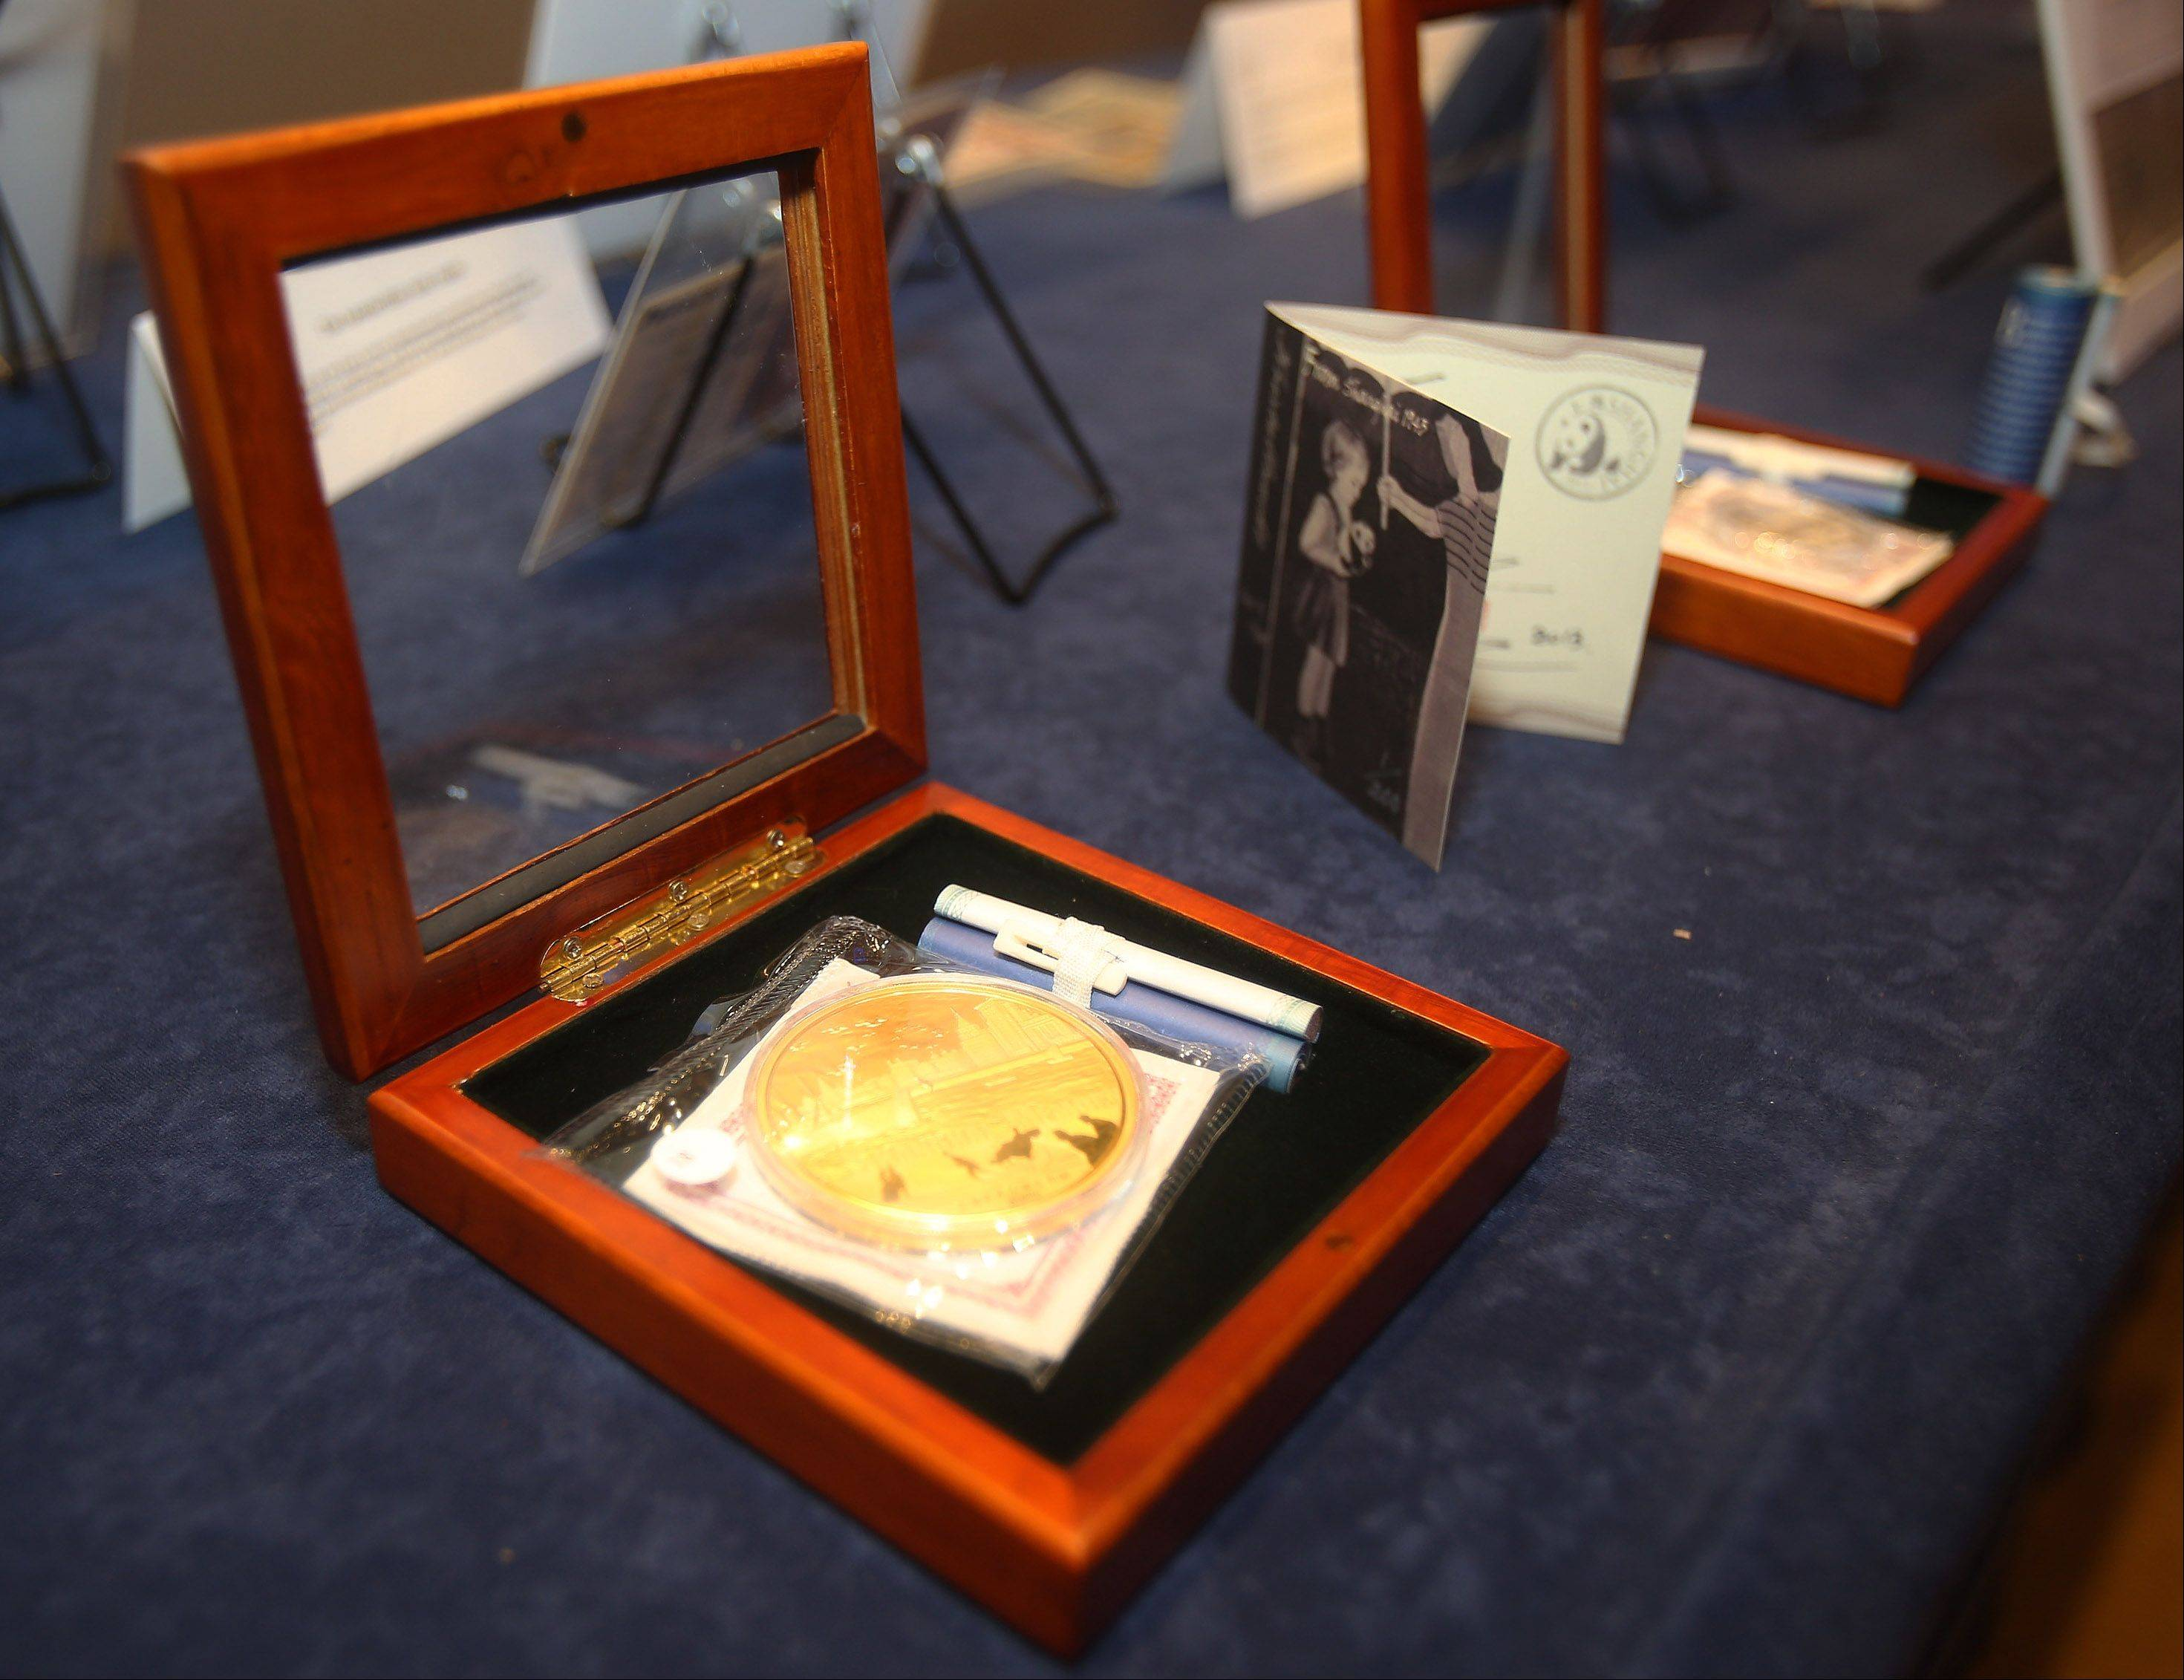 "Coins commemorating the Shanghai Ghetto are on display during the presentation ""Shanghai Memory"" based on survivors of the World War II Shanghai Ghetto Thursday at the Hyatt Regency in Rosemont. The Shanghai Ghetto in China was an area where Jews fled Europe to escape Nazi persecution."